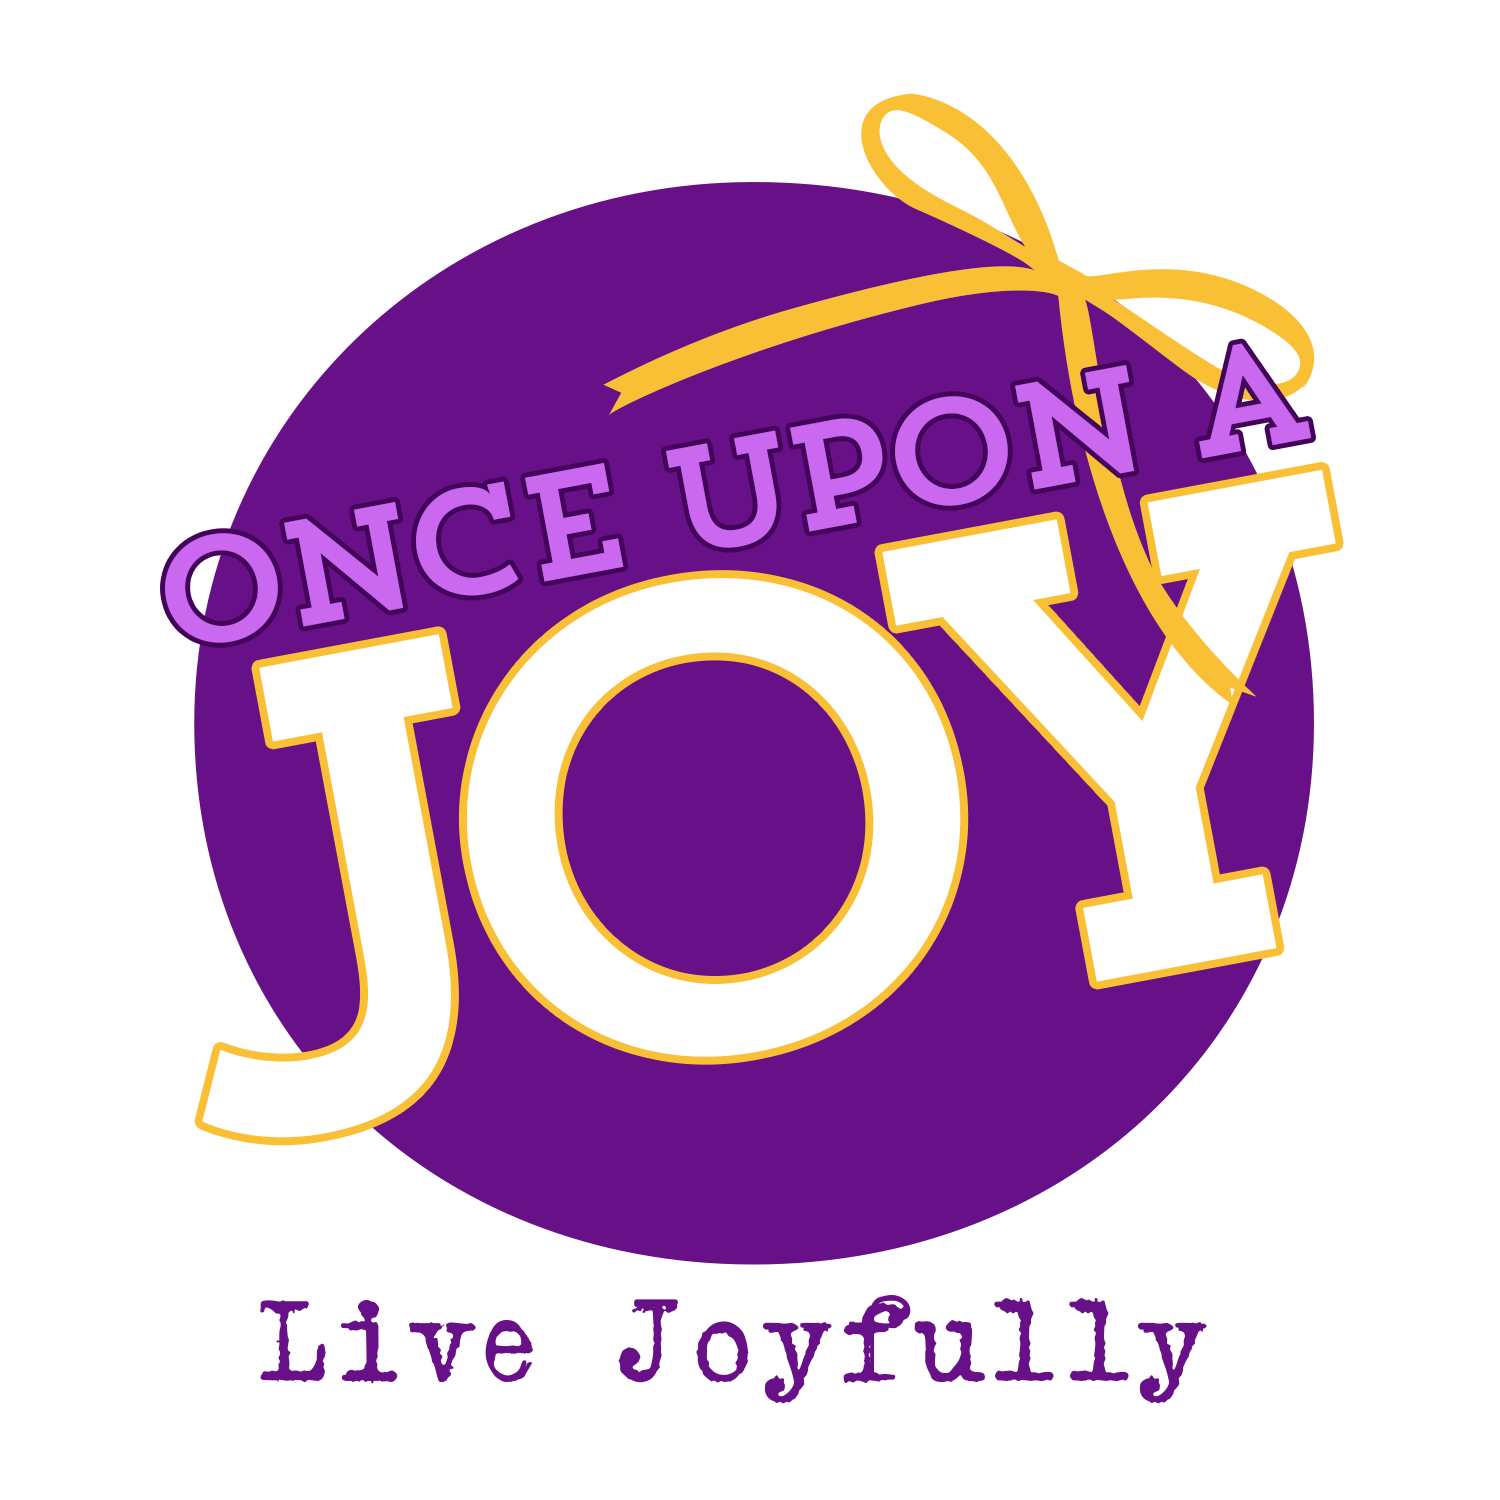 Excited clipart joyfulness. Once upon a joy